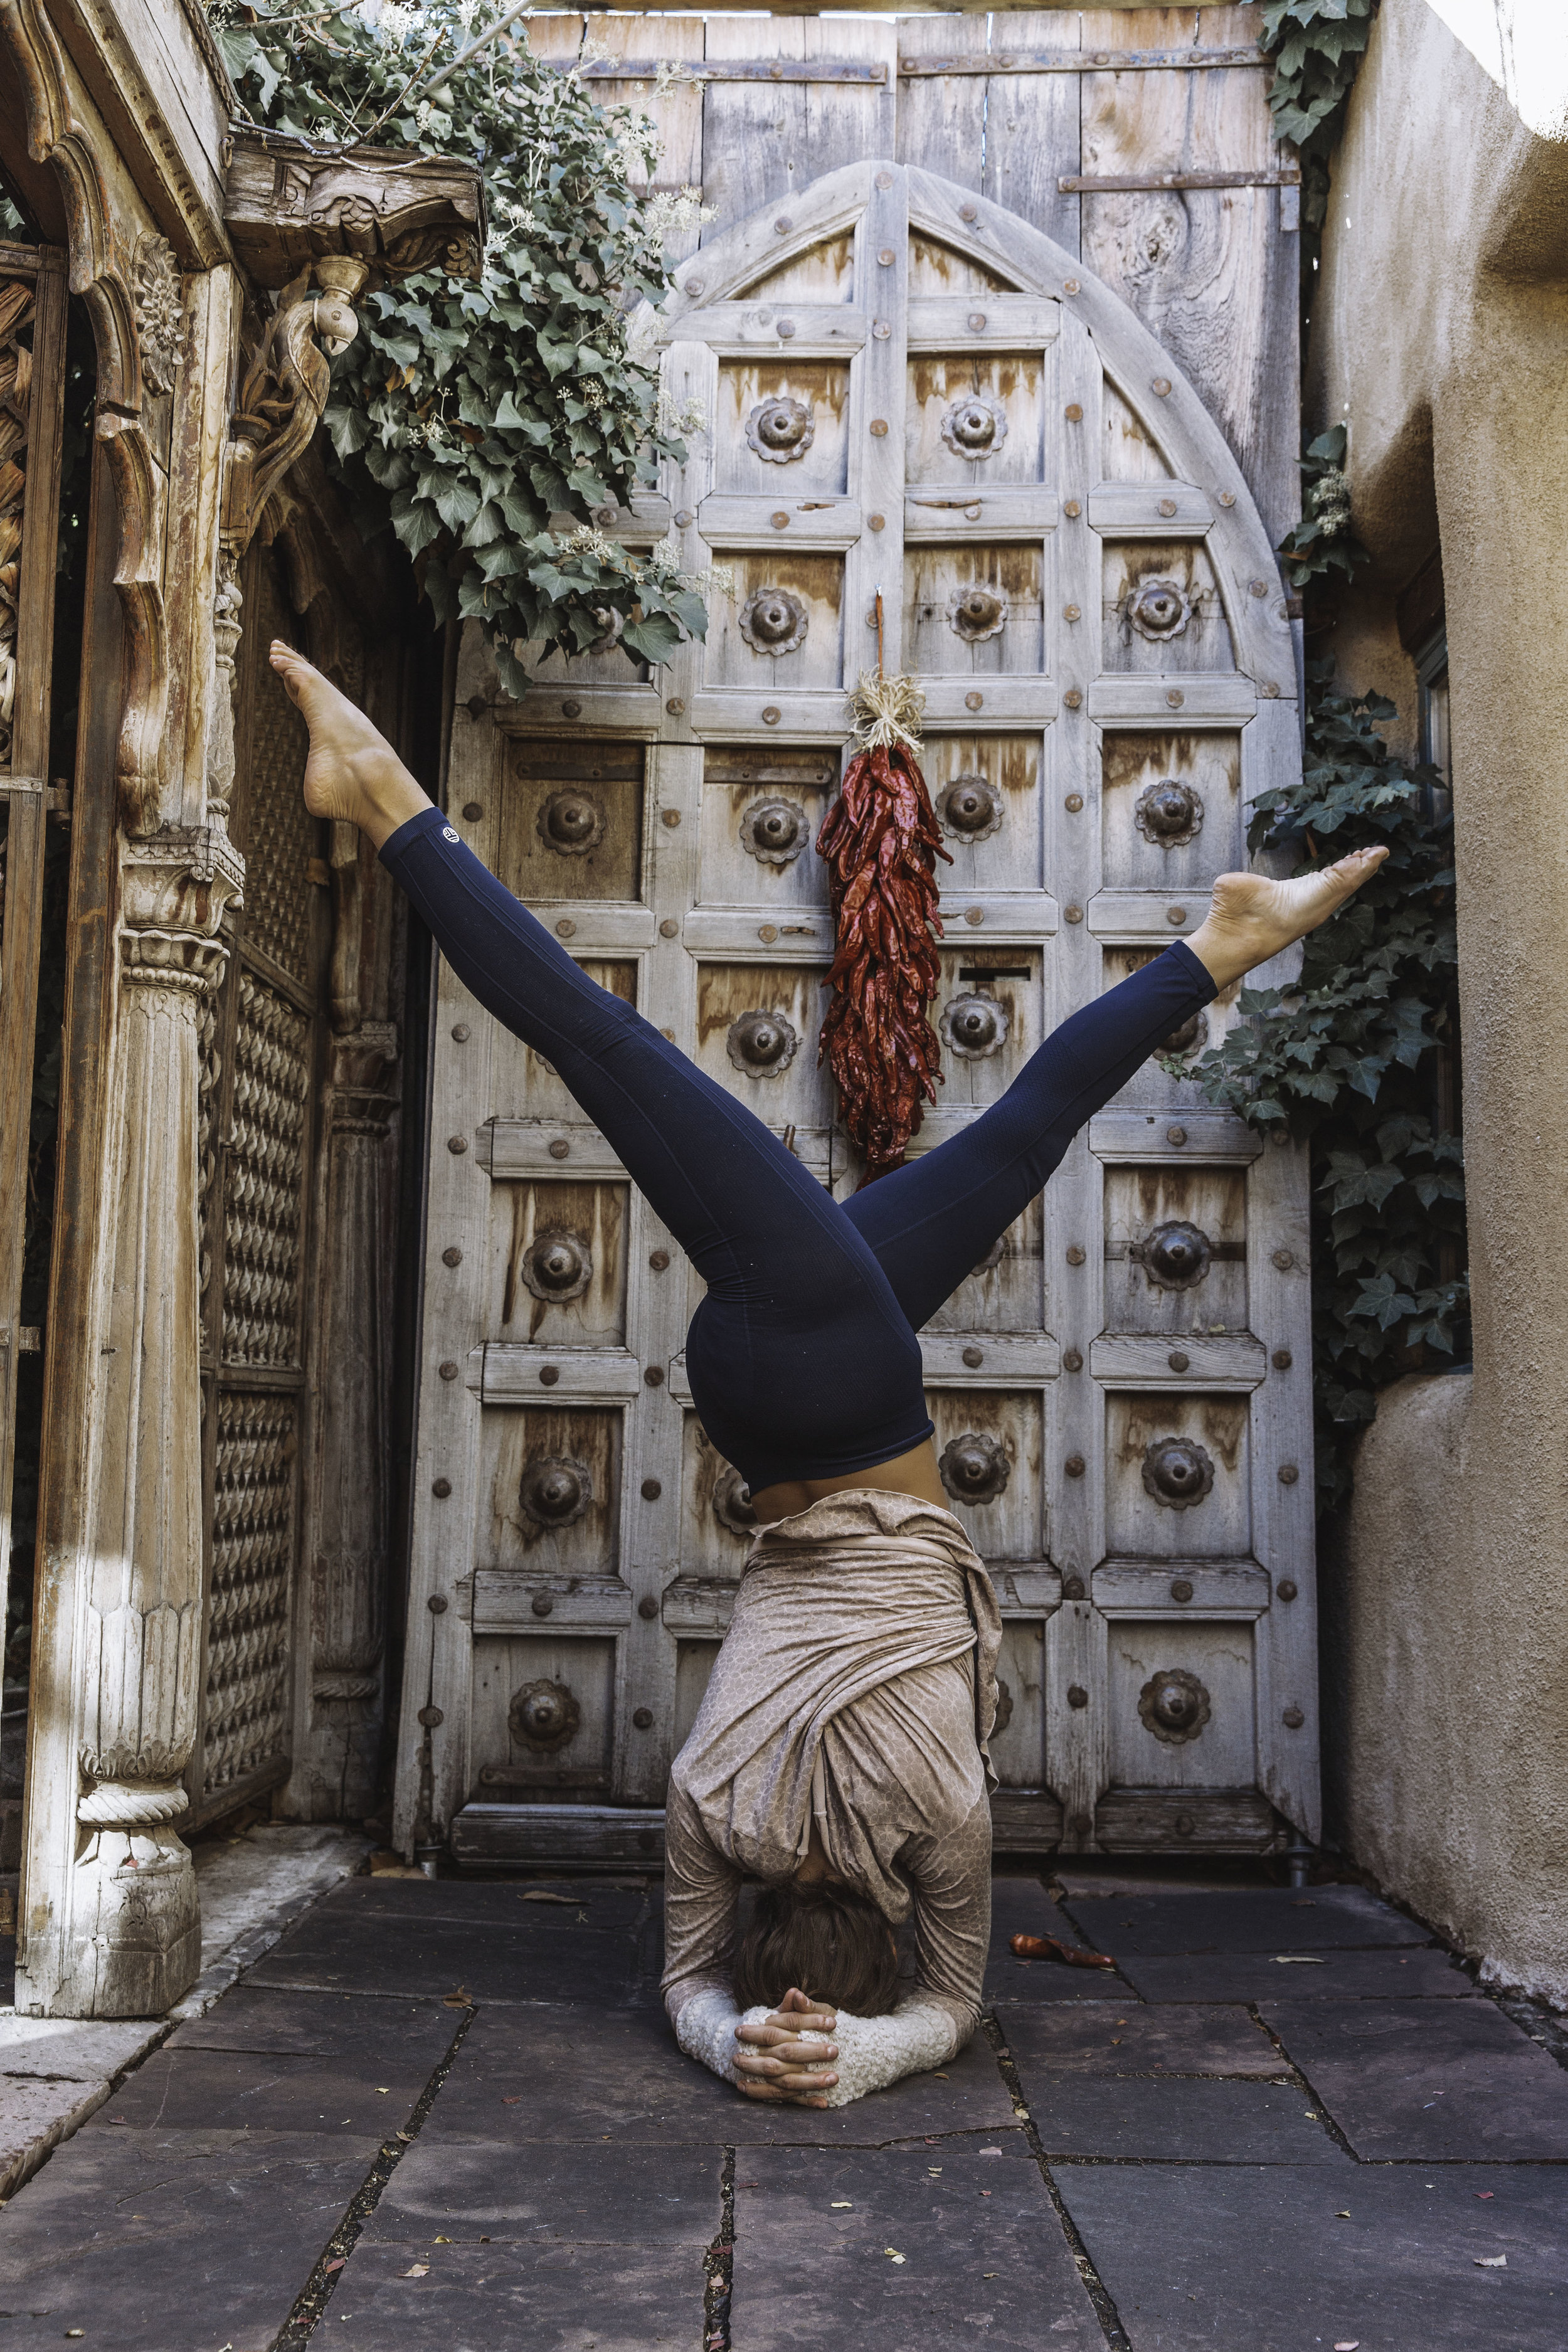 Yoga - There's yoga at every turn in Santa Fe. Ashtanga, vinyasa, bikram… you can find it all here. Try classes atThe Body, or Thrive. For Ashtanga, Kendra Myers is the one to track down for led classes and Mysore.